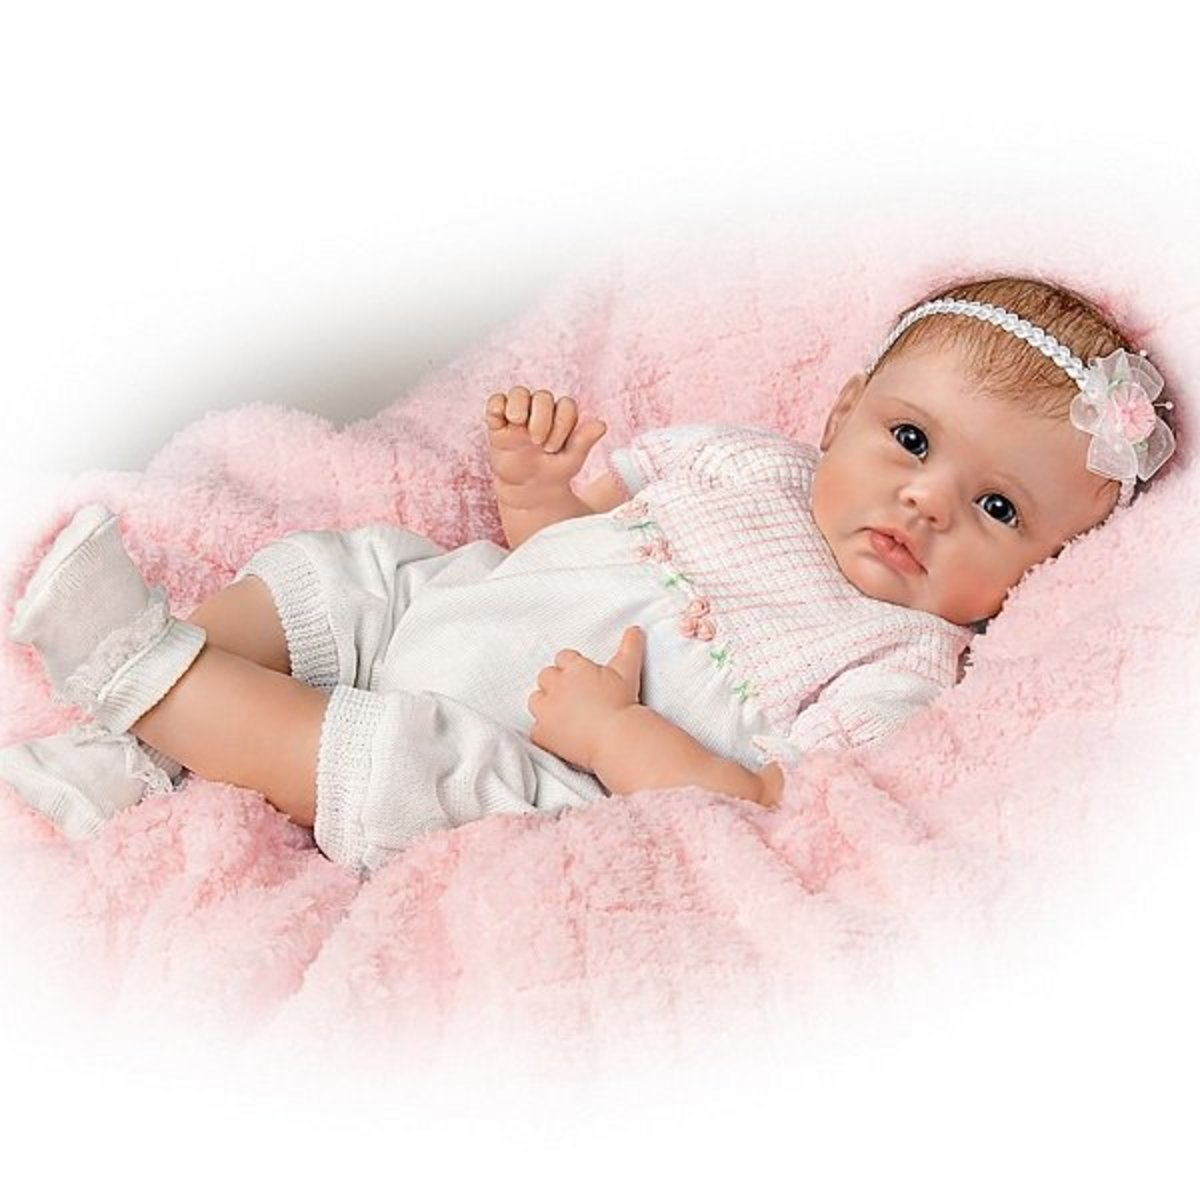 Meet Olivia, sweet lifelike baby girl doll